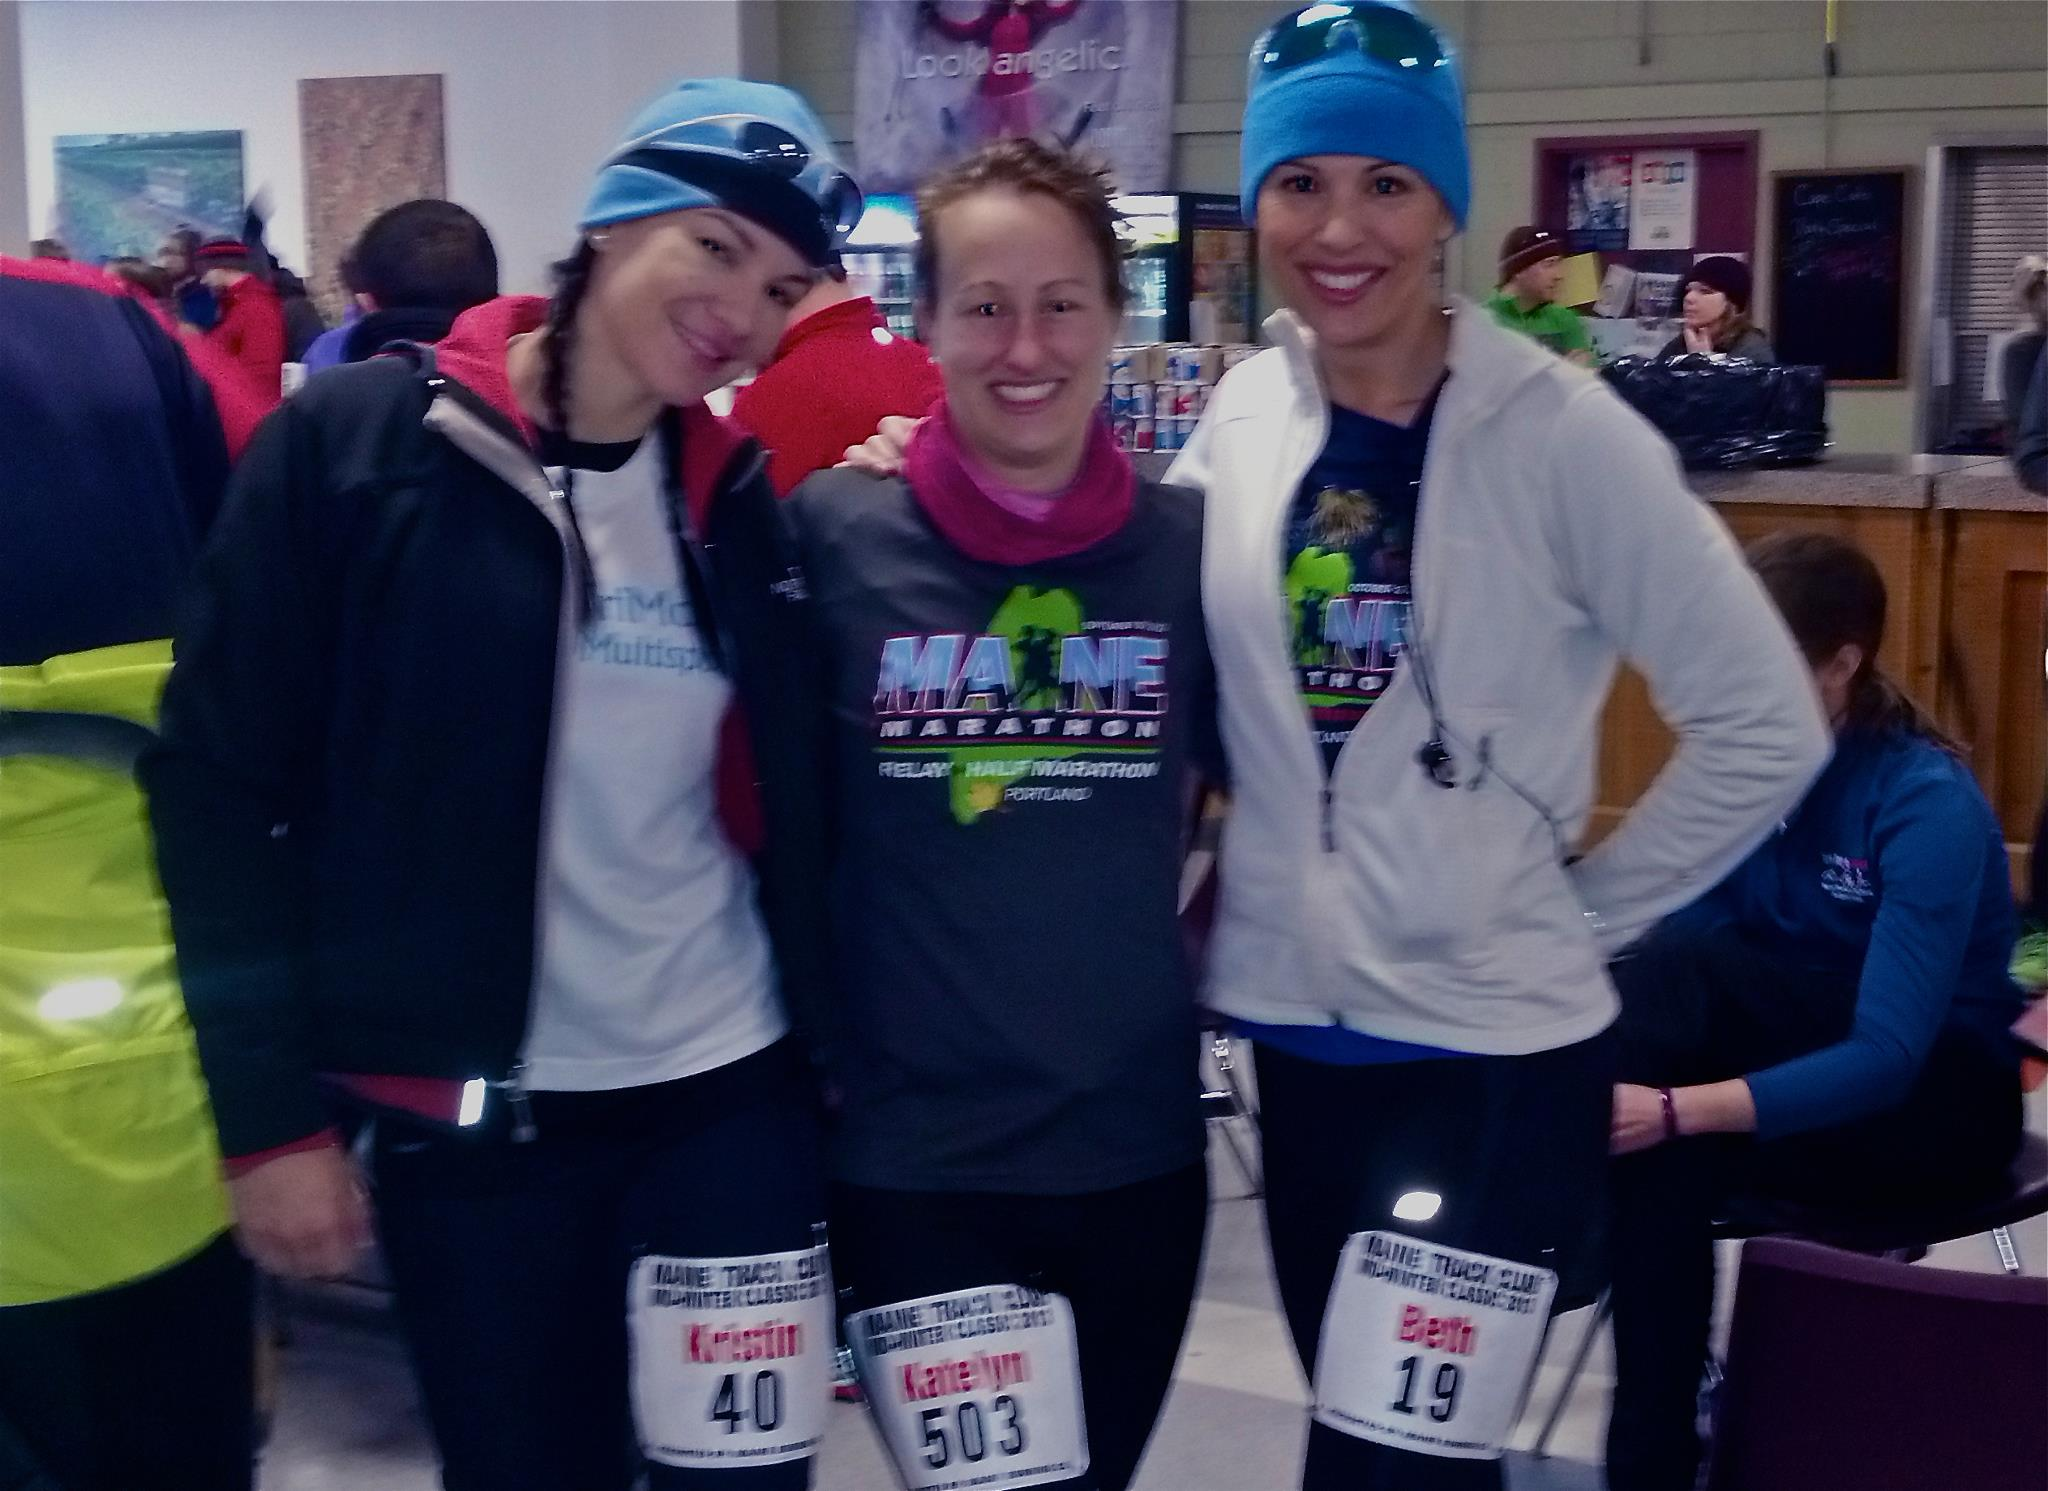 Kristin, myself, and Beth getting ready to run this thing!